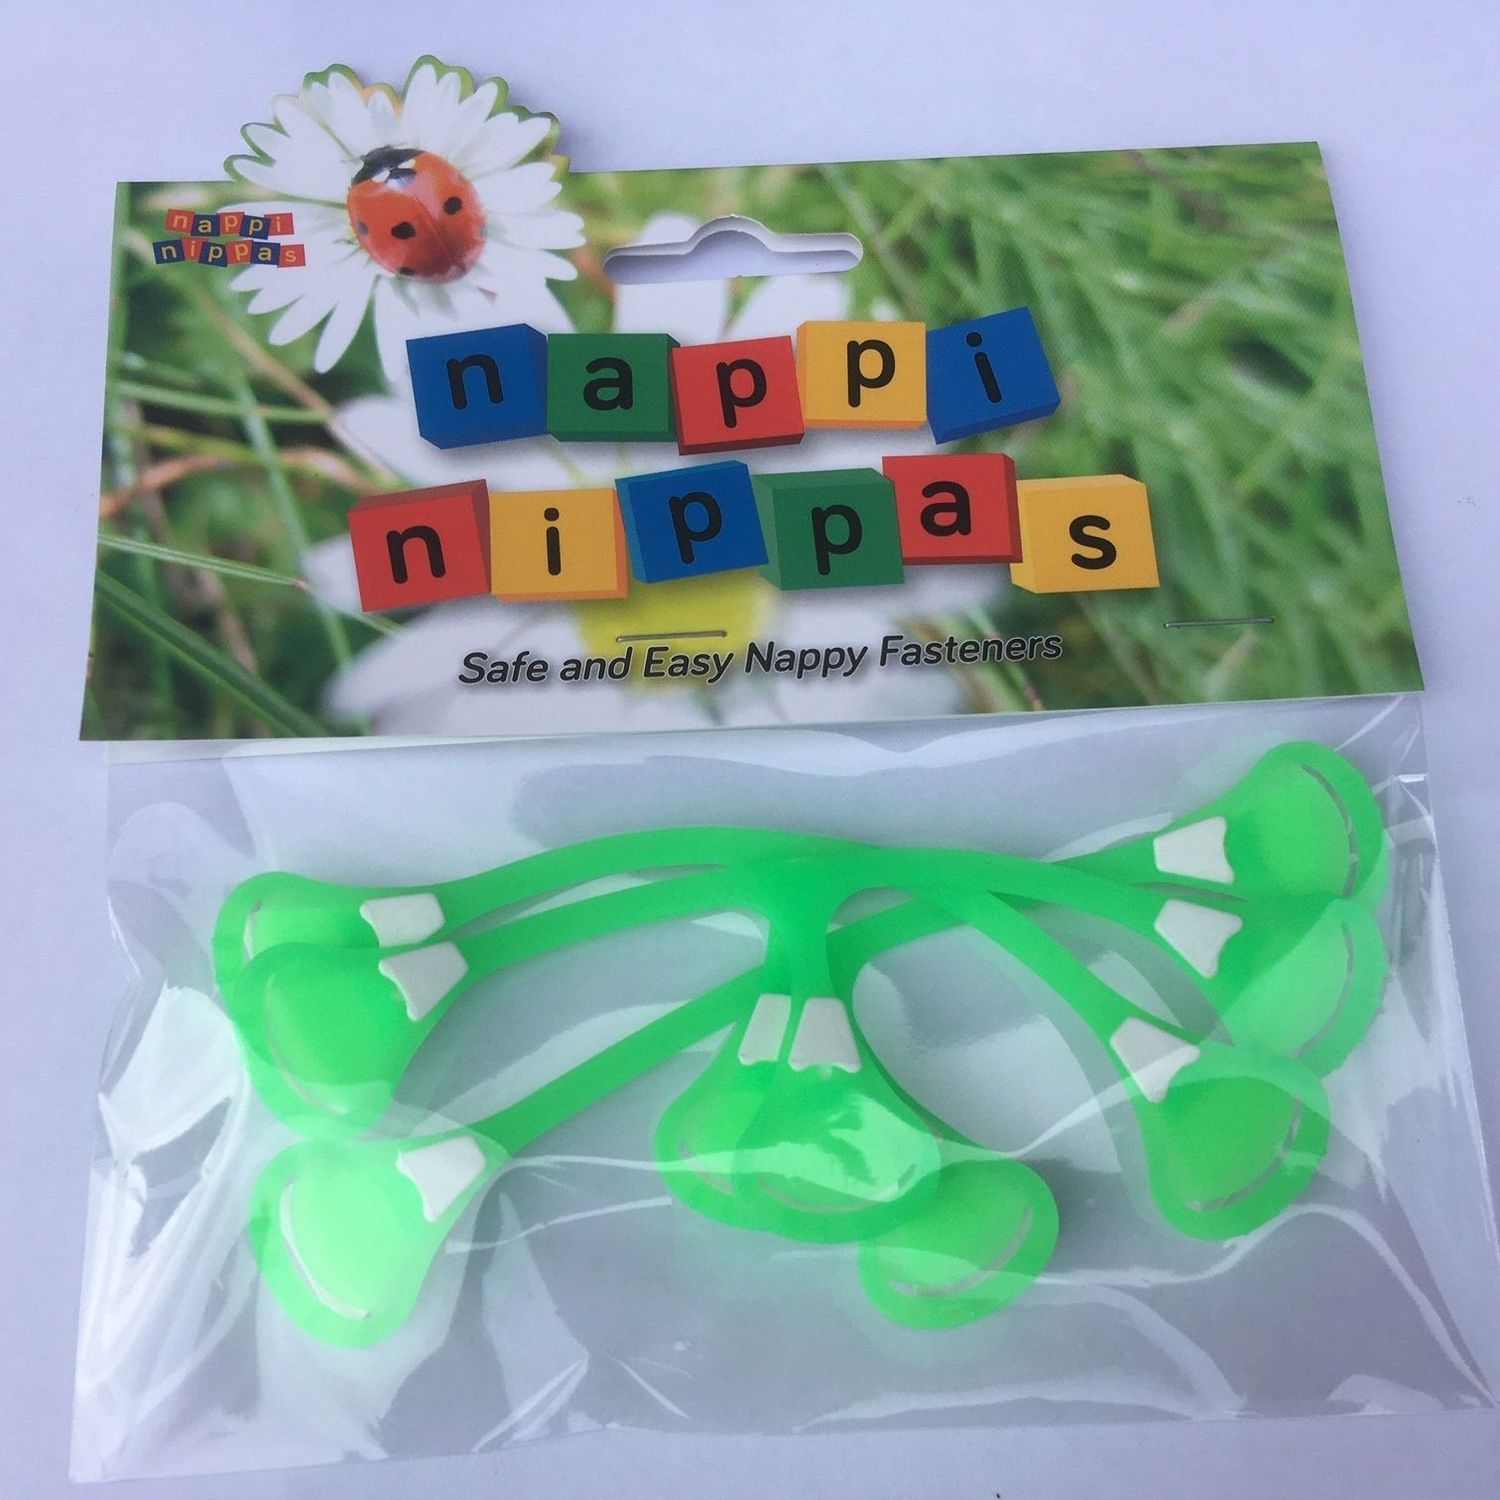 Nappi Nippas Nappy Fastener 3 Pack - Choose your colour - Neon Green